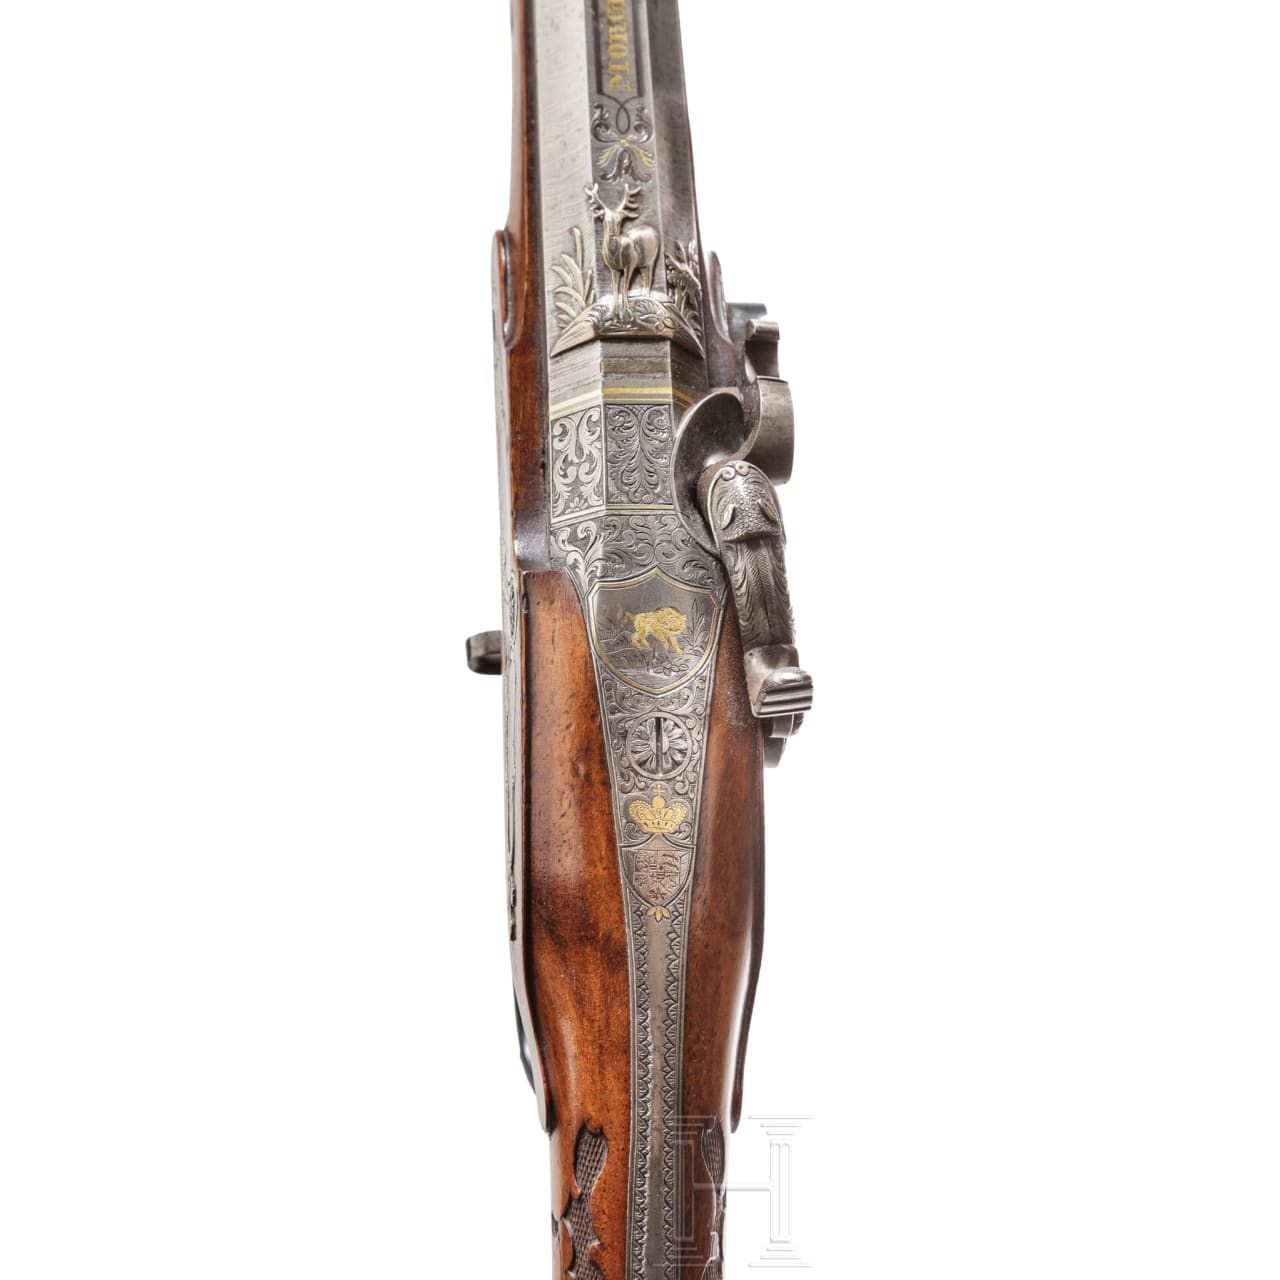 A luxury percussion rifle from the armoury of the Archdukes of Oldenburg, by Christian Morgenroth in Gernrode, circa 1830